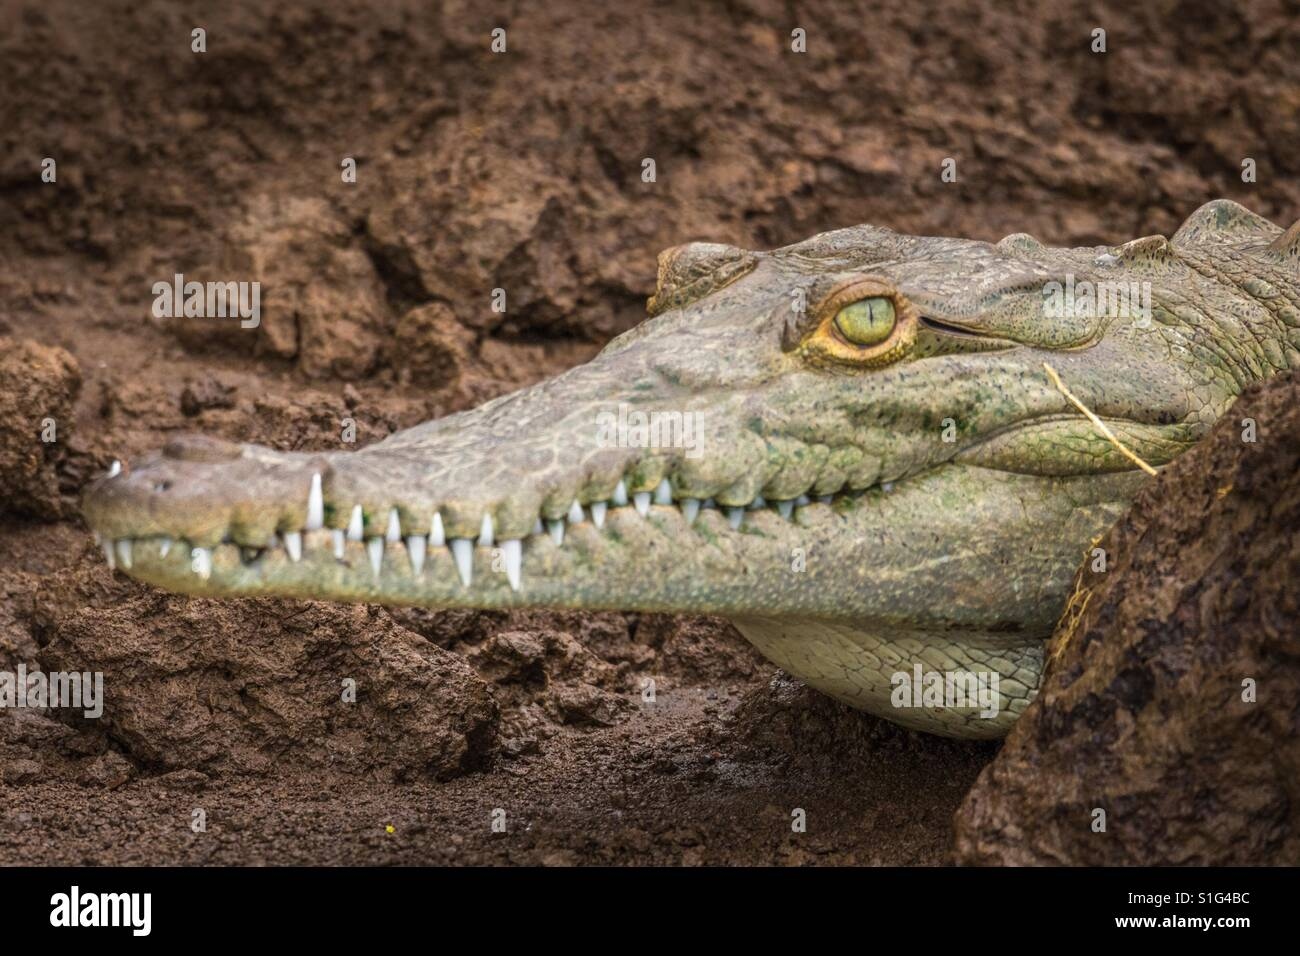 Young crocodile on the banks of the Tárcoles River in Costa Rica Stock Photo